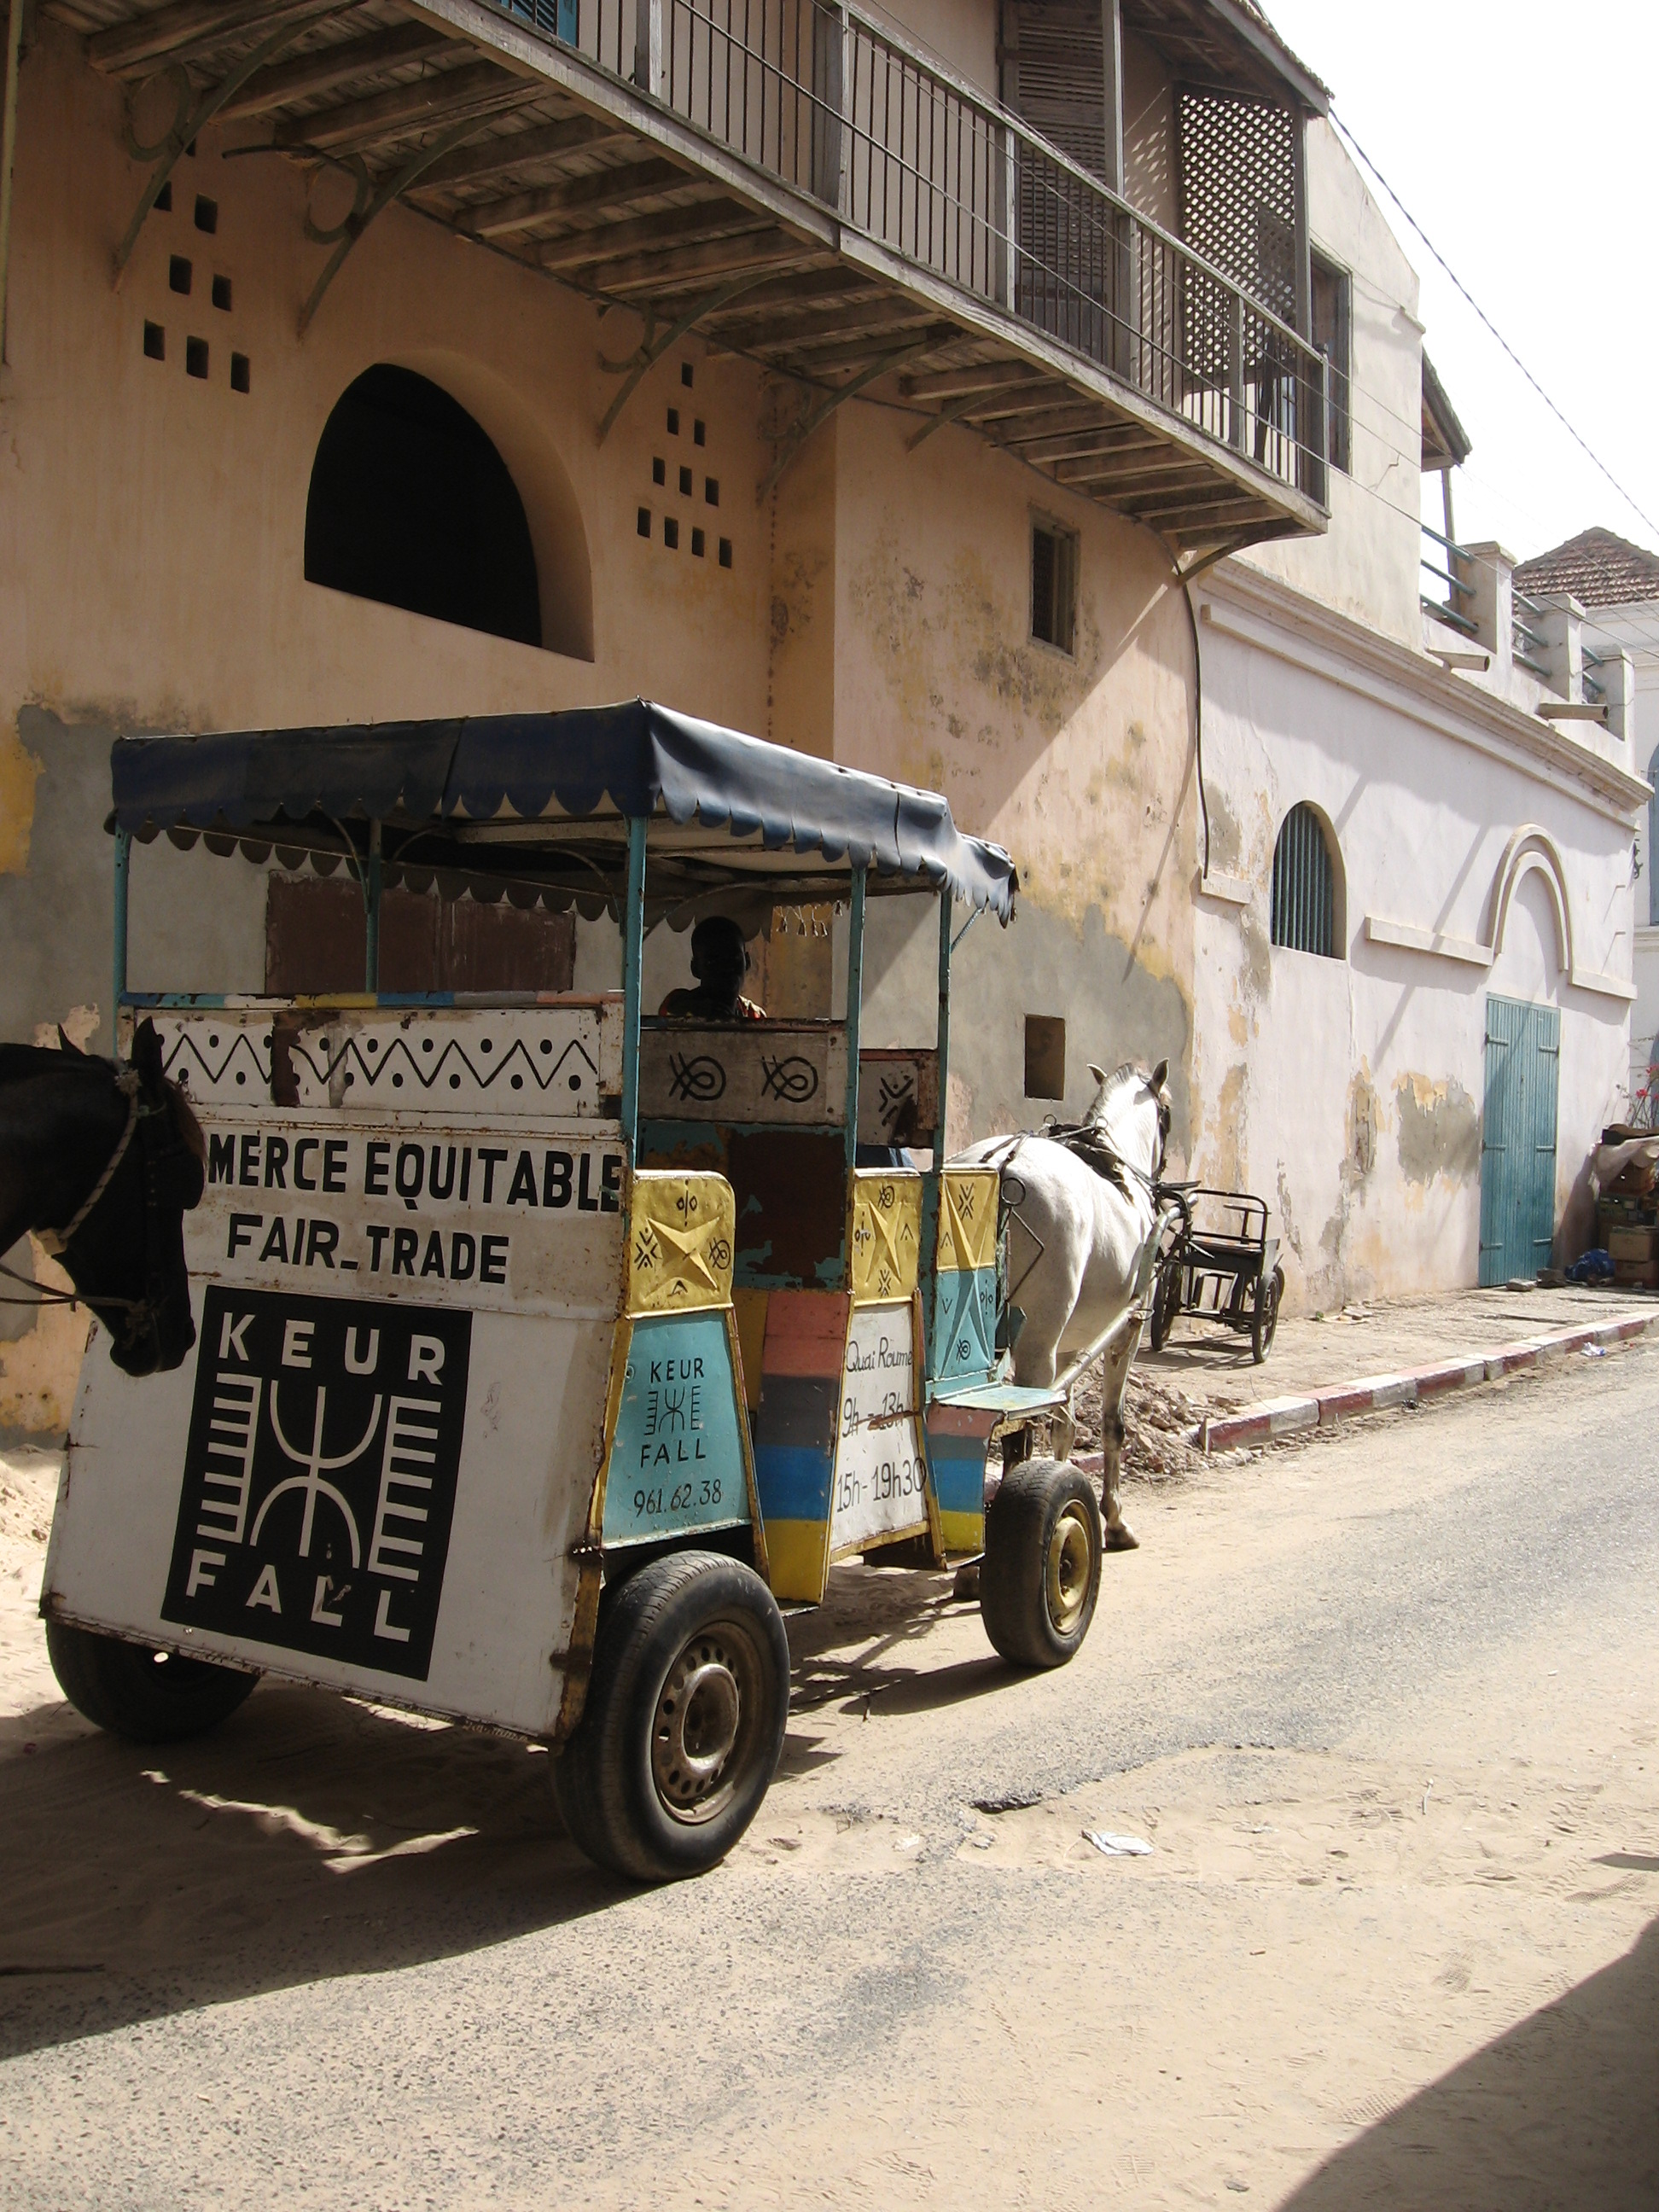 https://i0.wp.com/upload.wikimedia.org/wikipedia/commons/c/c6/Saint_louis_Senegal_cart_2006.jpg